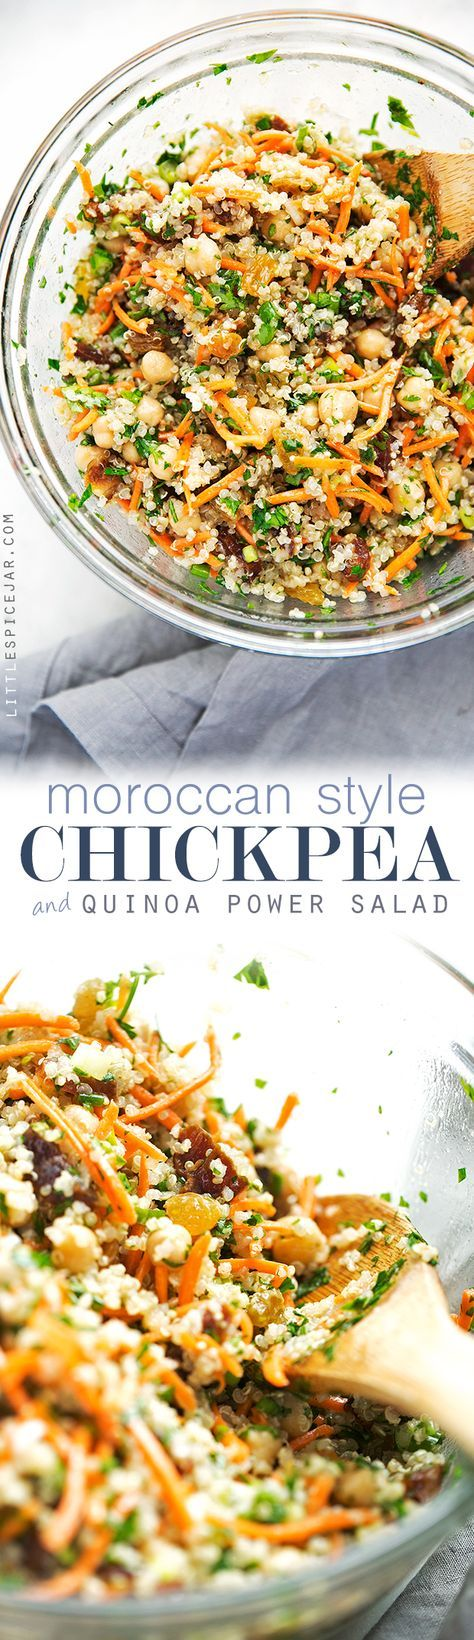 Moroccan Chickpea Quinoa Power Salad: Littlespicejar.com Note: made recipe as is - is too sweet with the dates. maybe eliminate or use less in future.